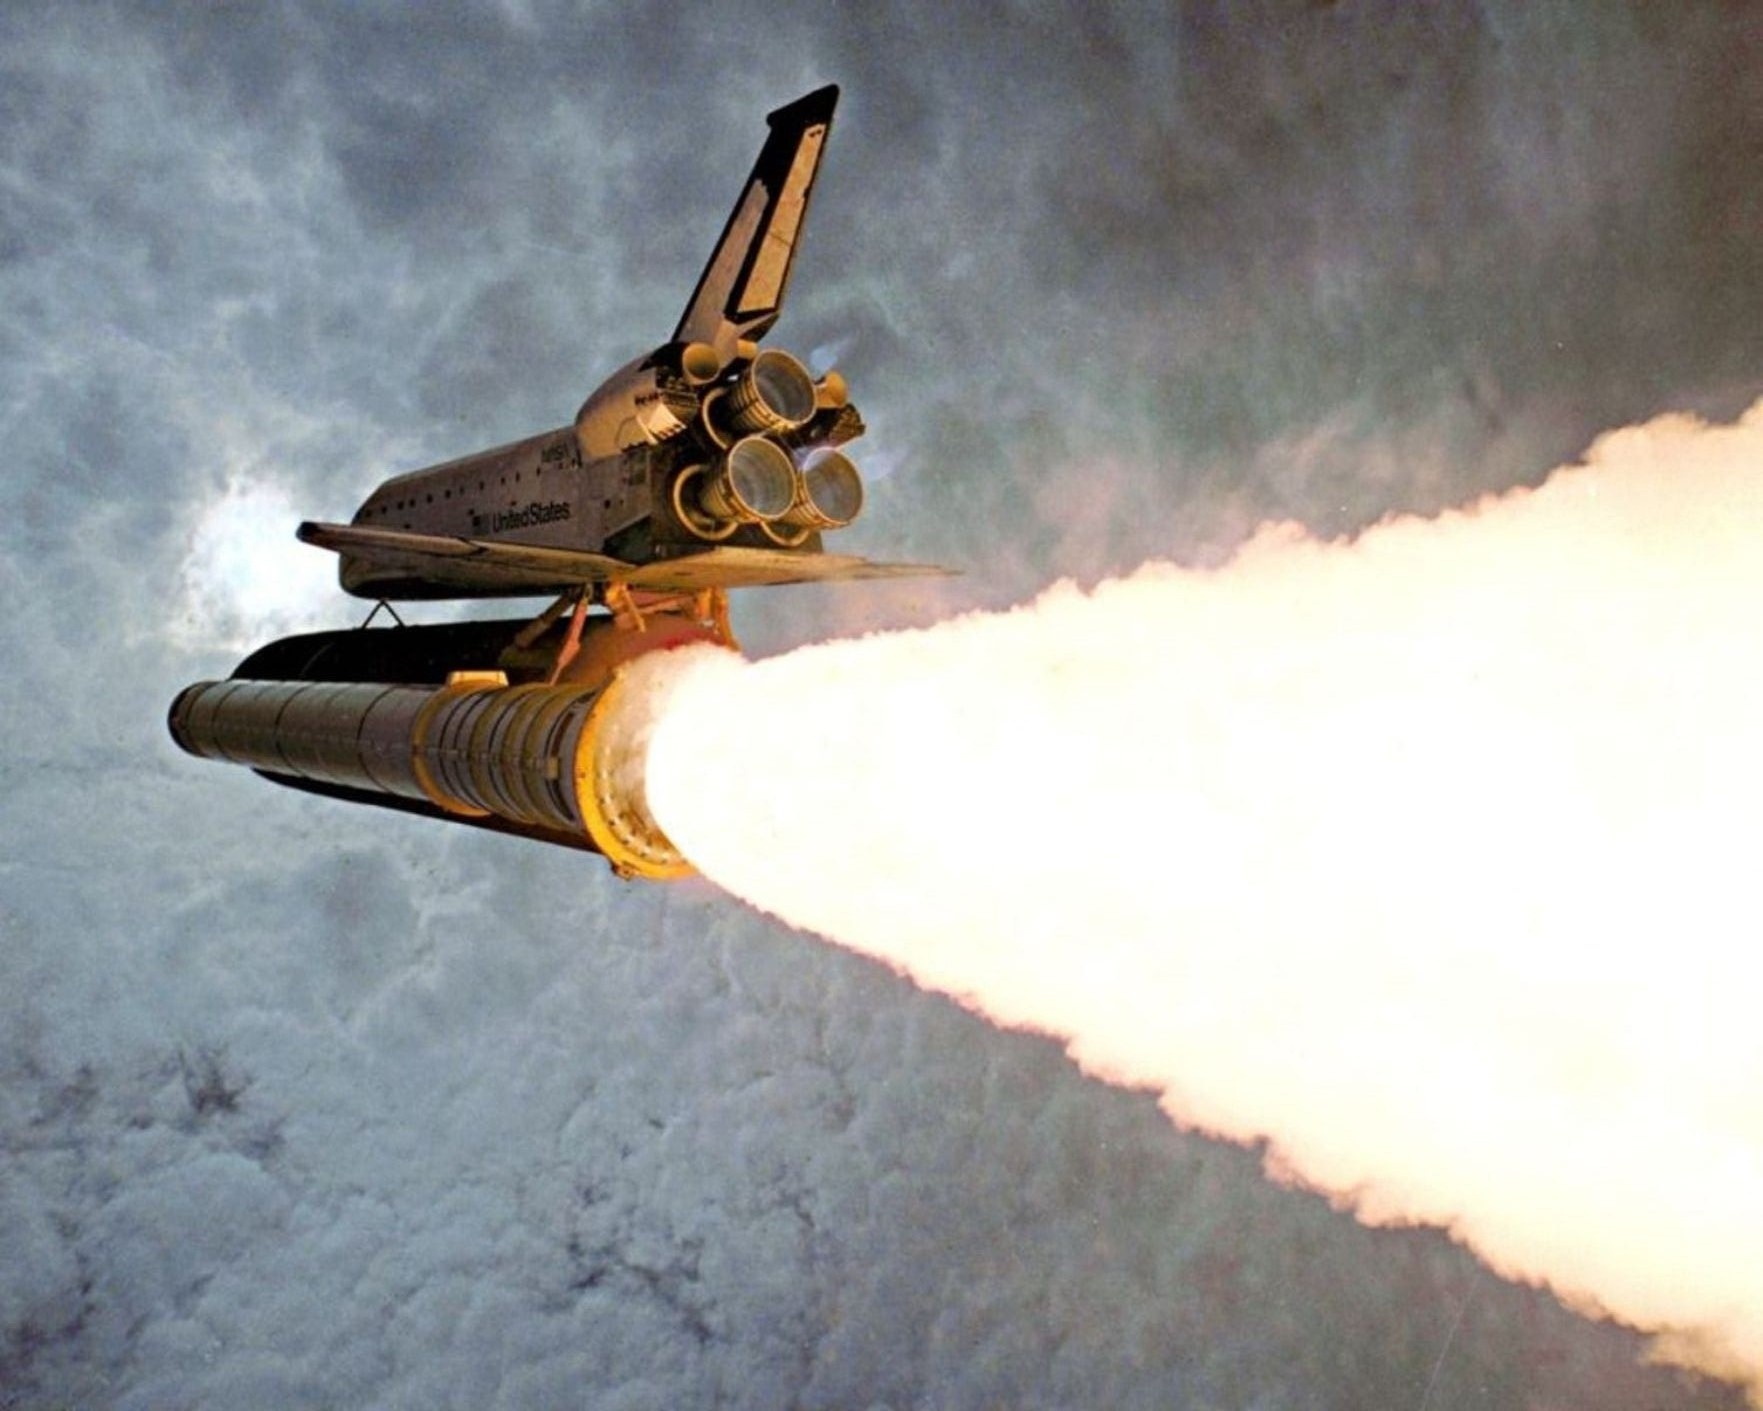 Space Shuttle Wallpaper and Background | 1763x1411 | ID:455504